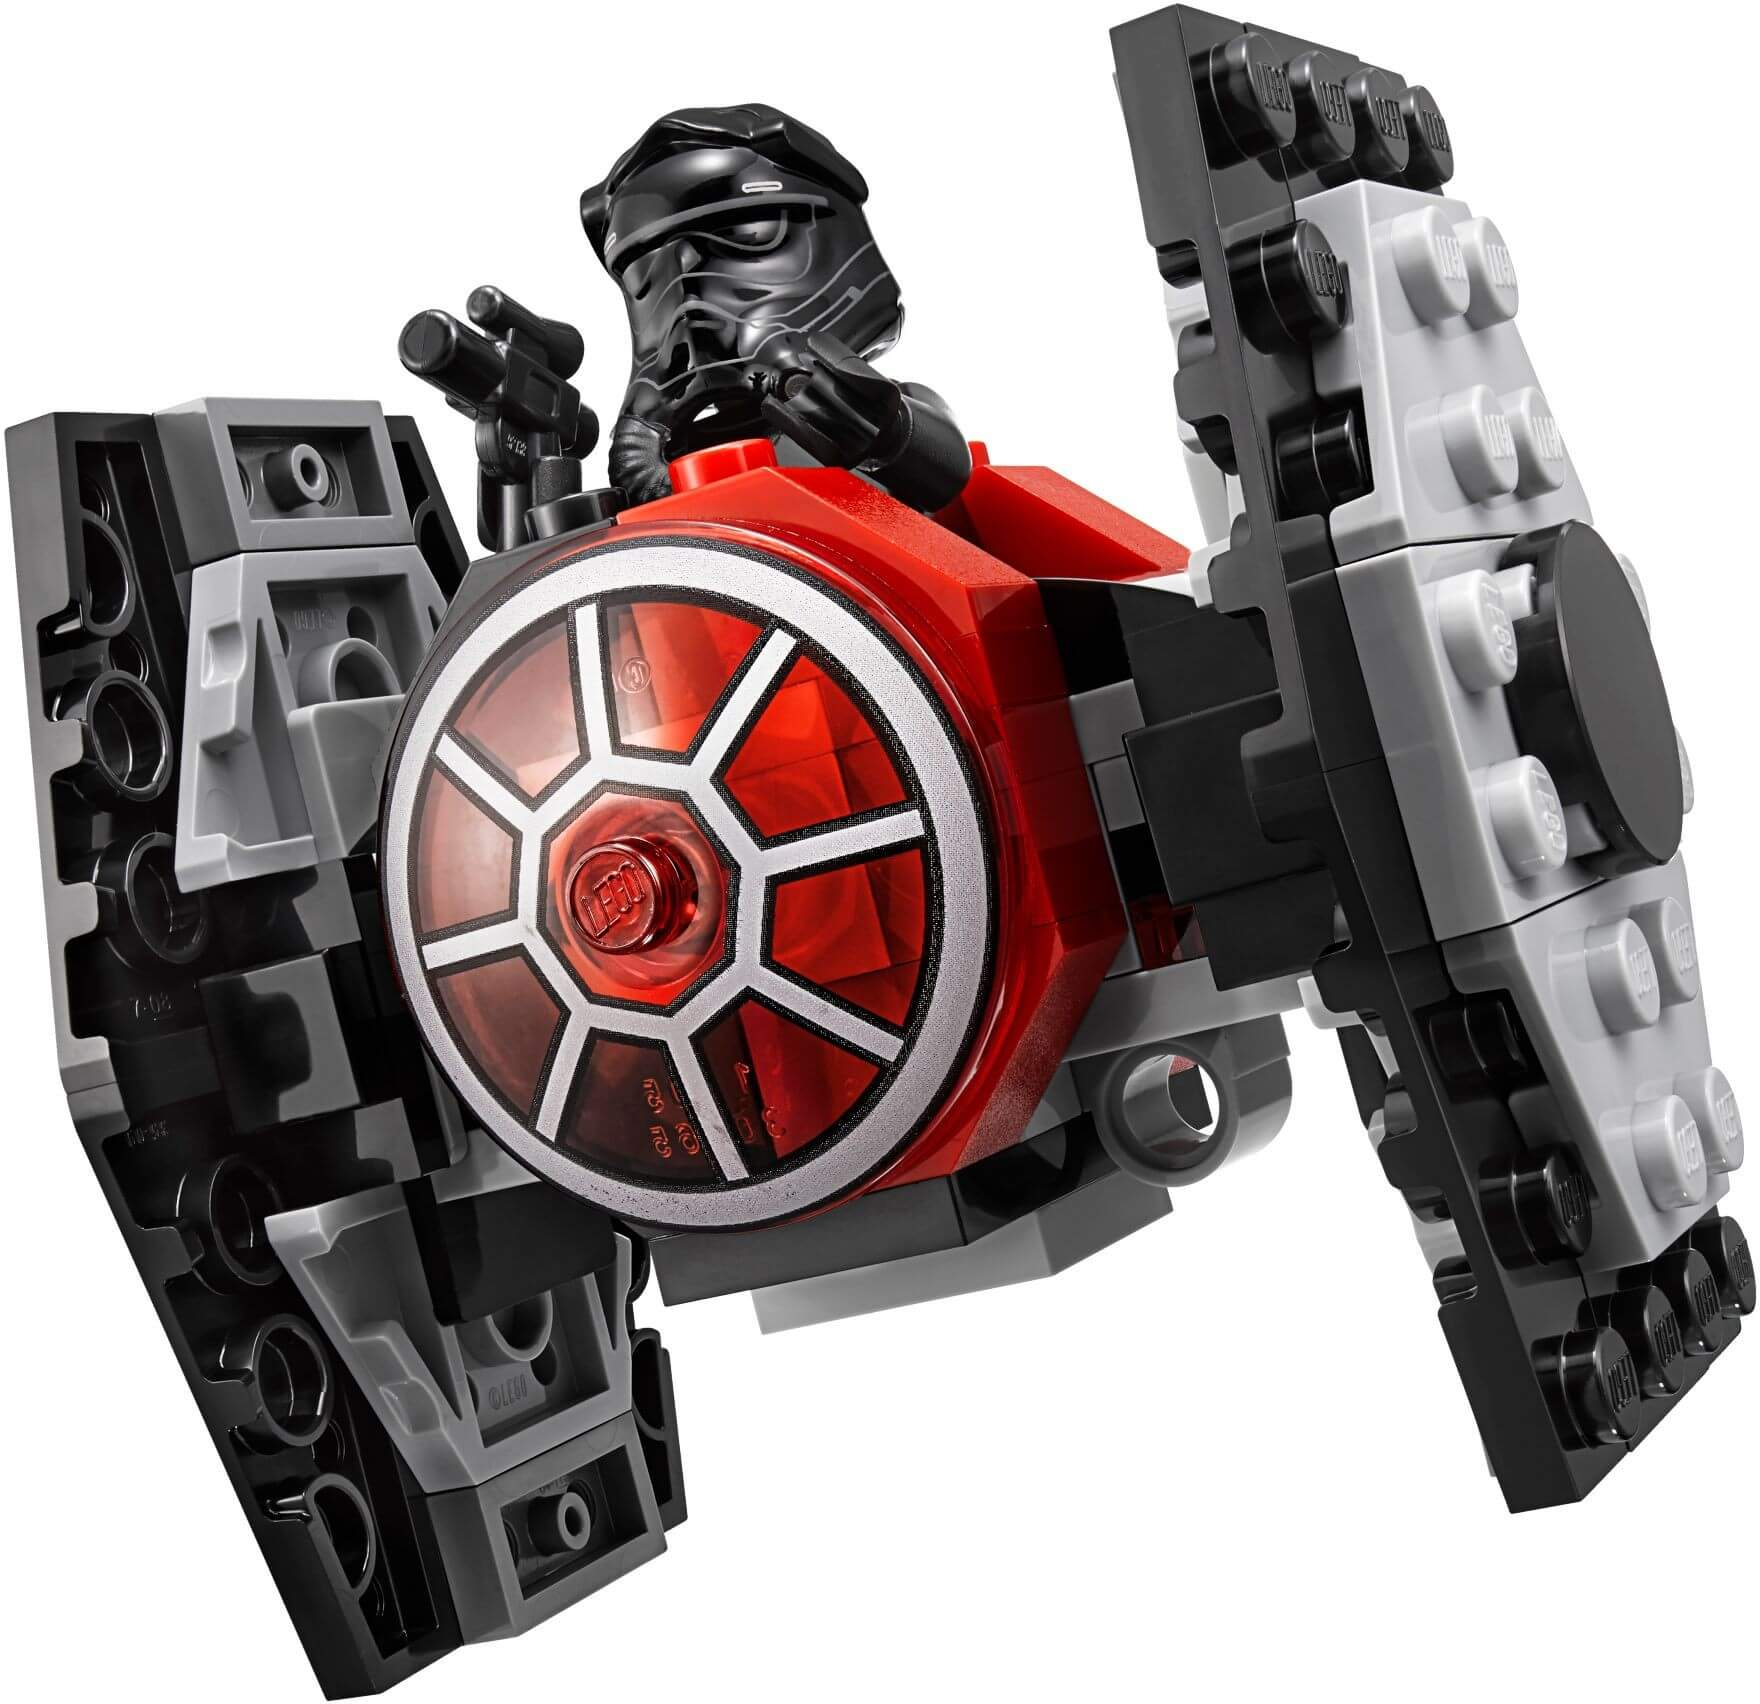 Mua đồ chơi LEGO 75194 - LEGO Star Wars 75194 - Phi Thuyền TIE Fighter First Order (LEGO Star Wars 75194 First Order TIE Fighter Microfighter)